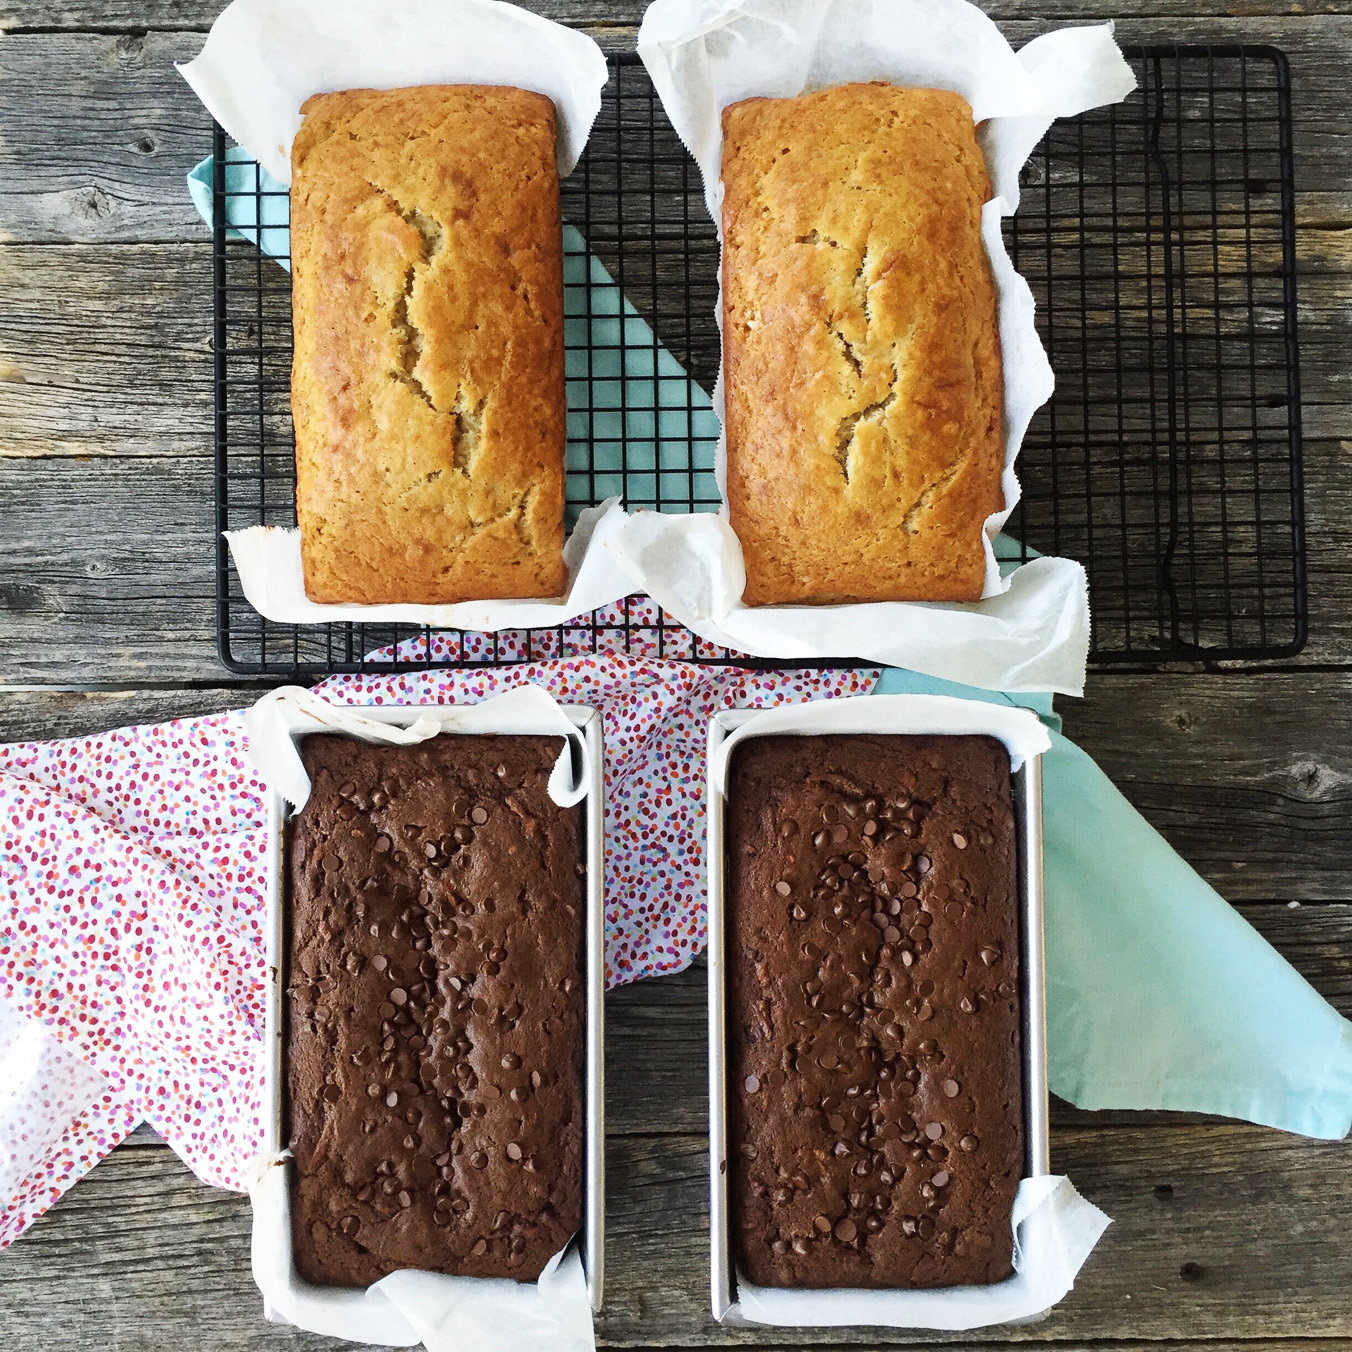 Classic Banana Bread and Chocolate Zucchini Bread